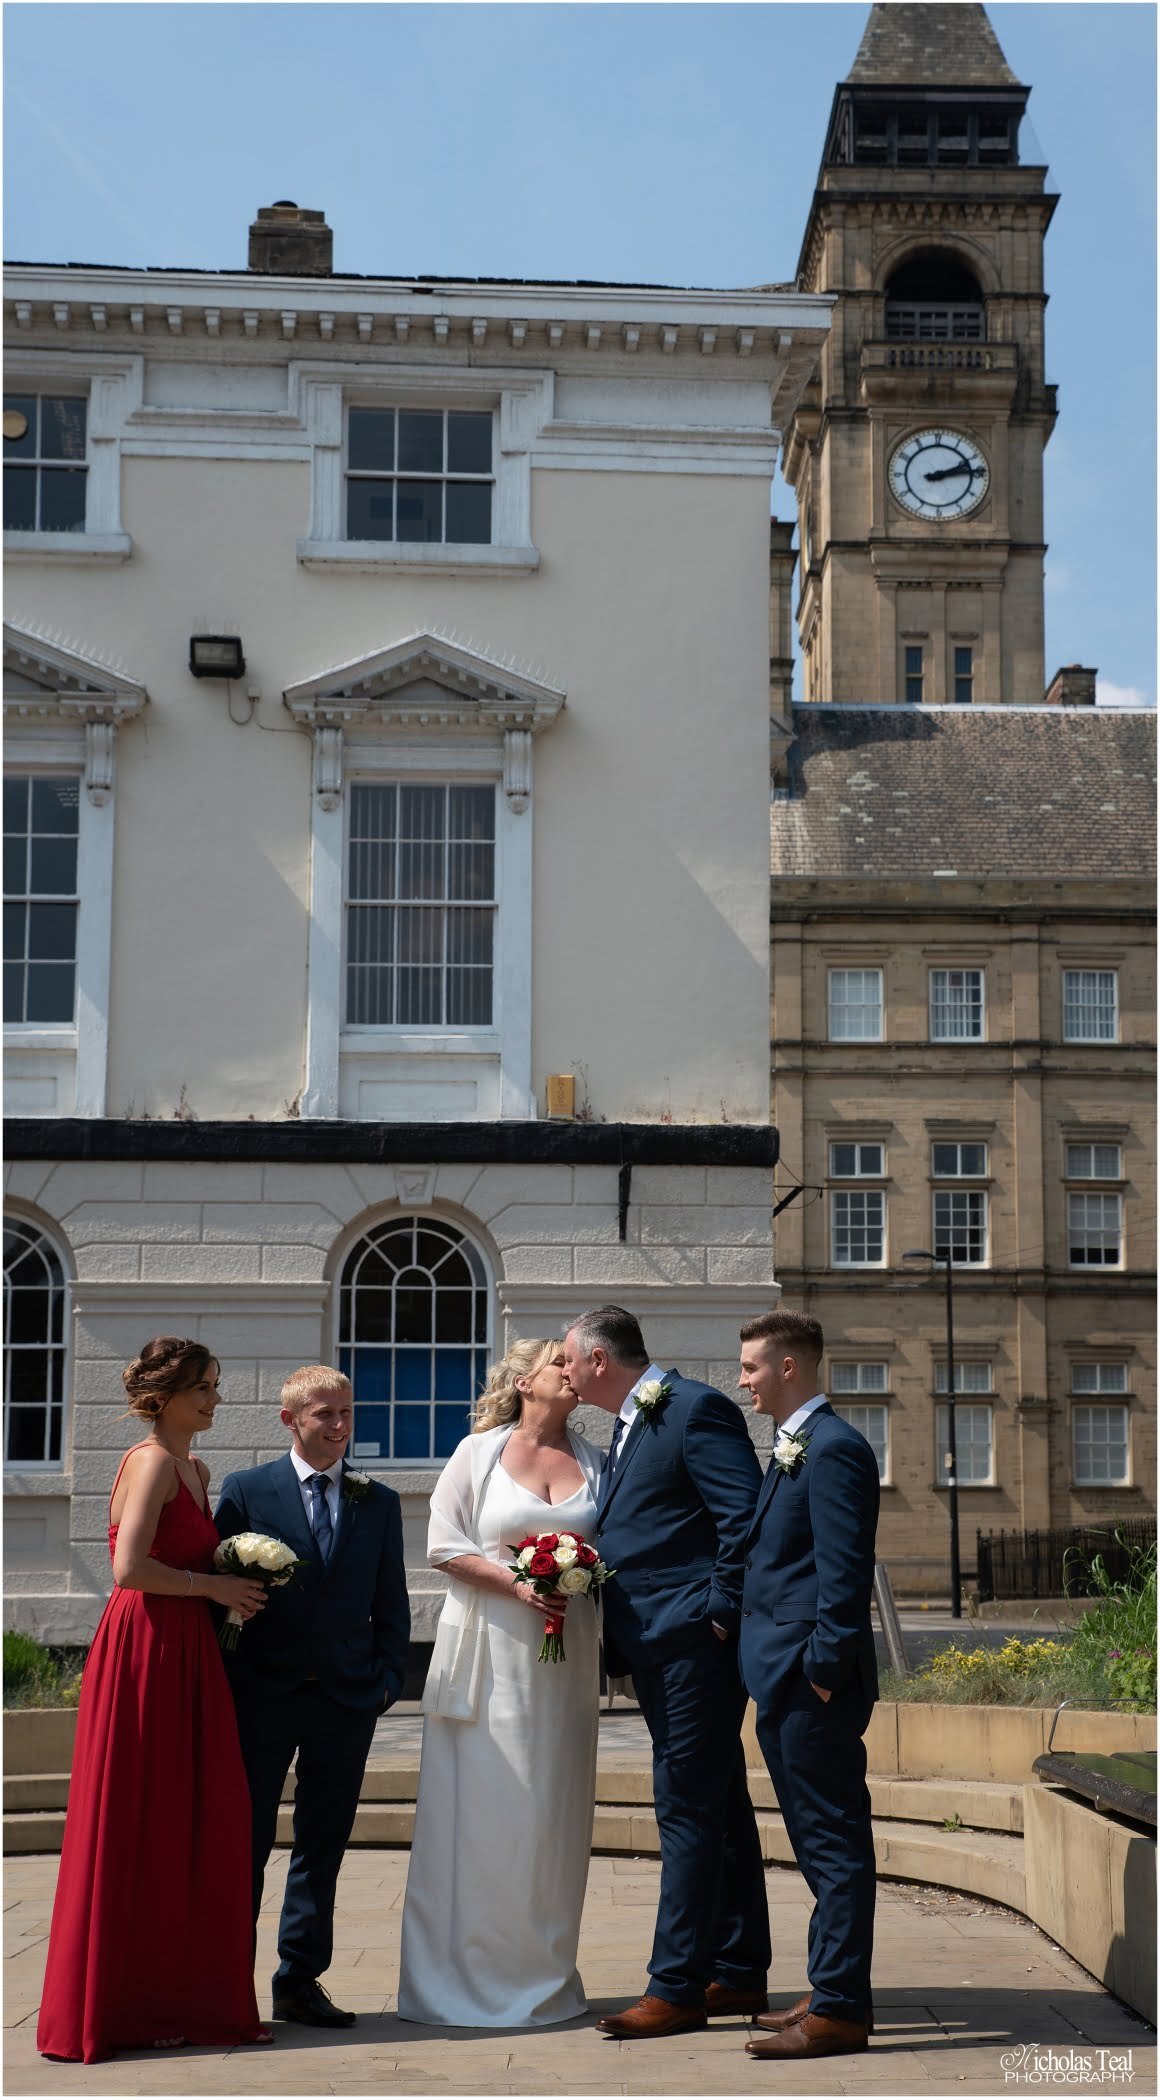 shot of bride and groom kissing with the town hall clock tower in the back ground